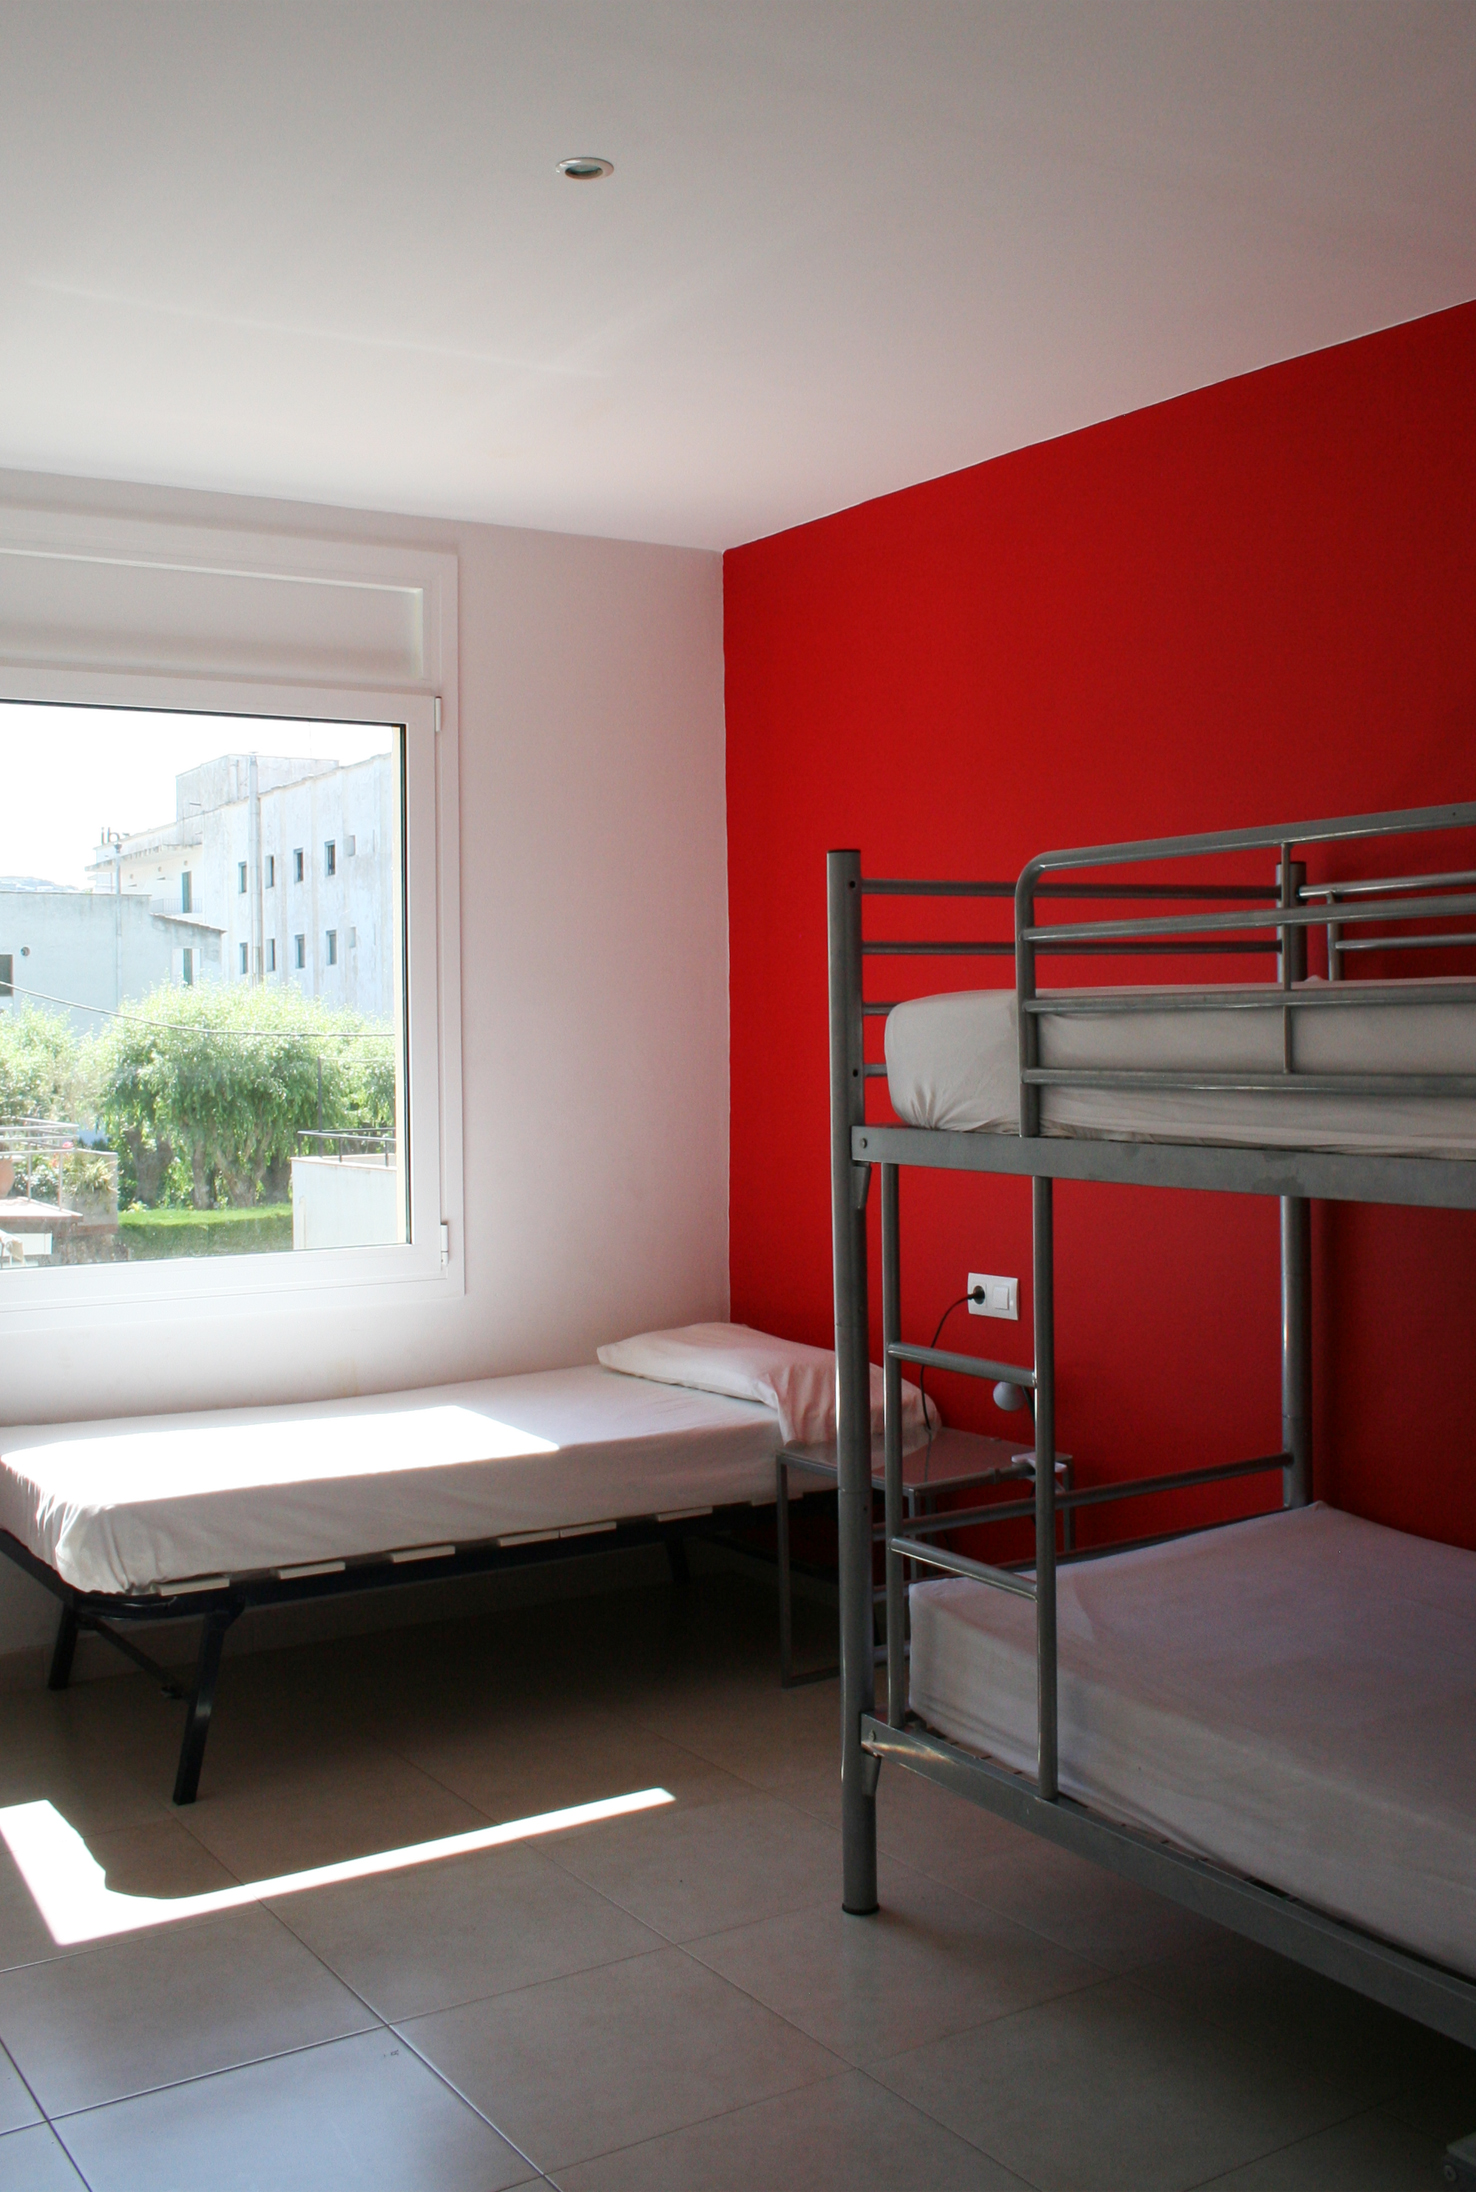 joncar-mar-apartament-2-dormitorio-2